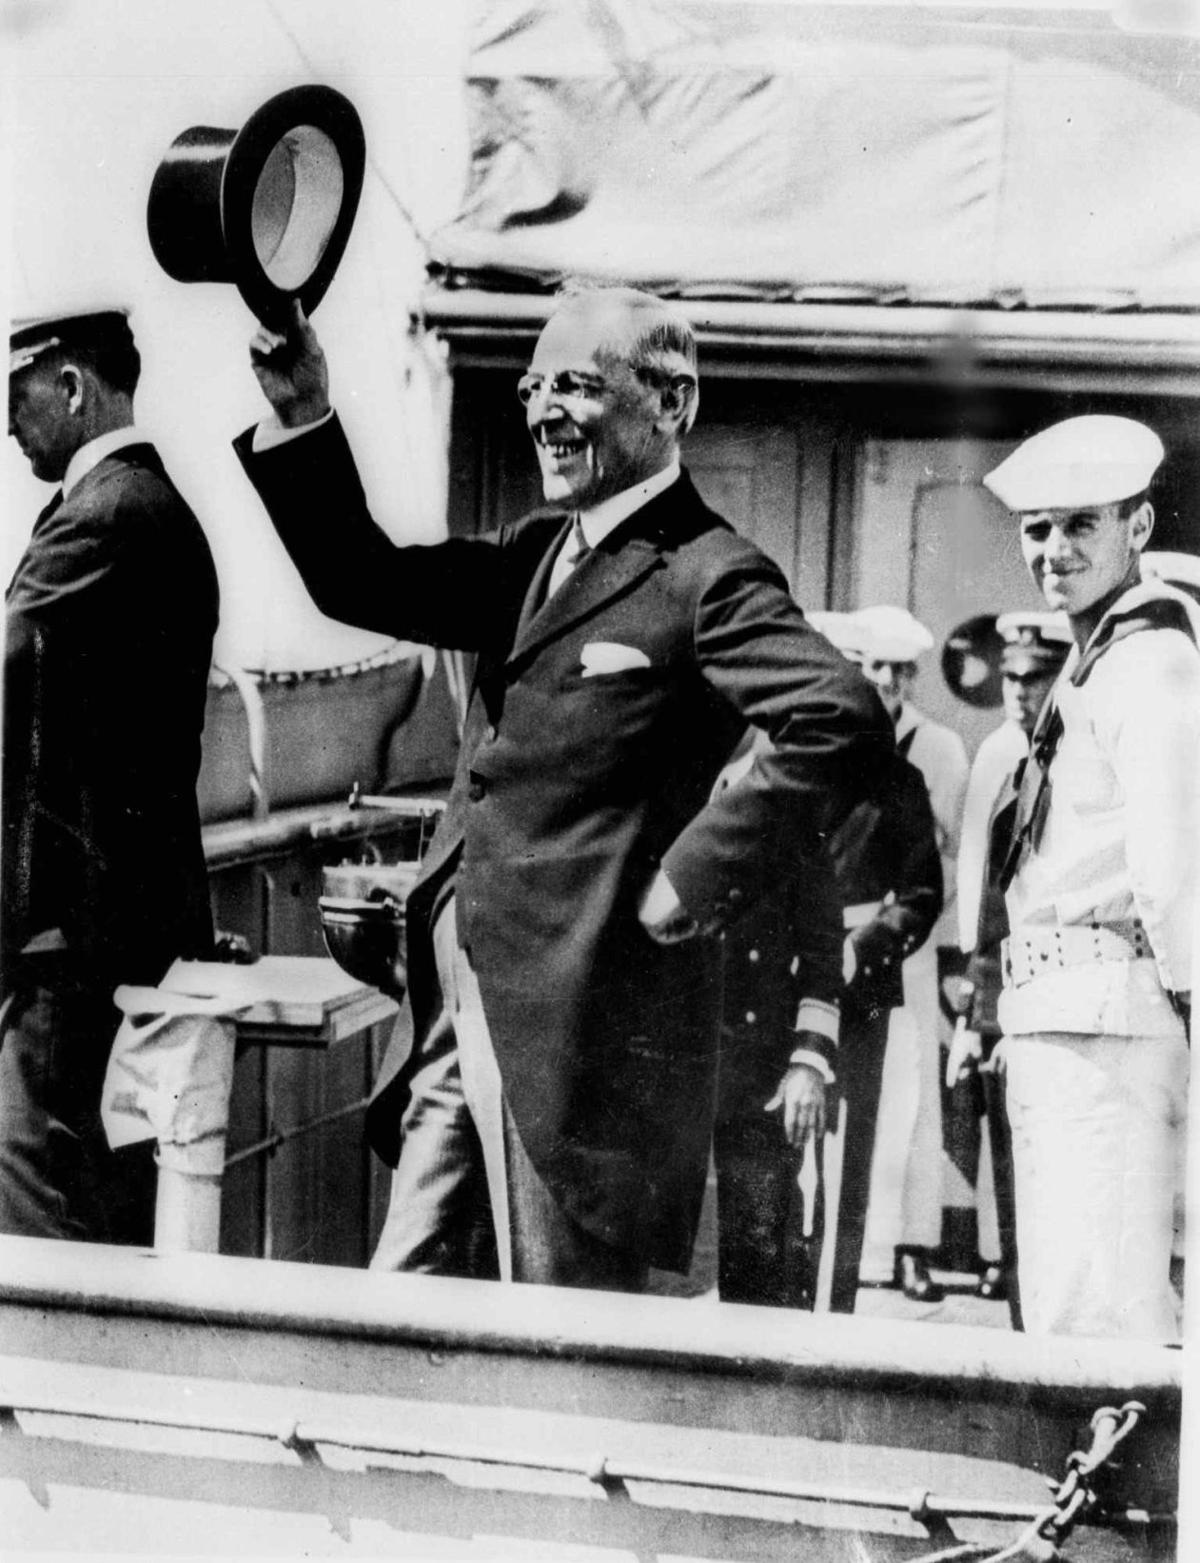 Wilson returning from the Versailles Peace Conference, 1919.